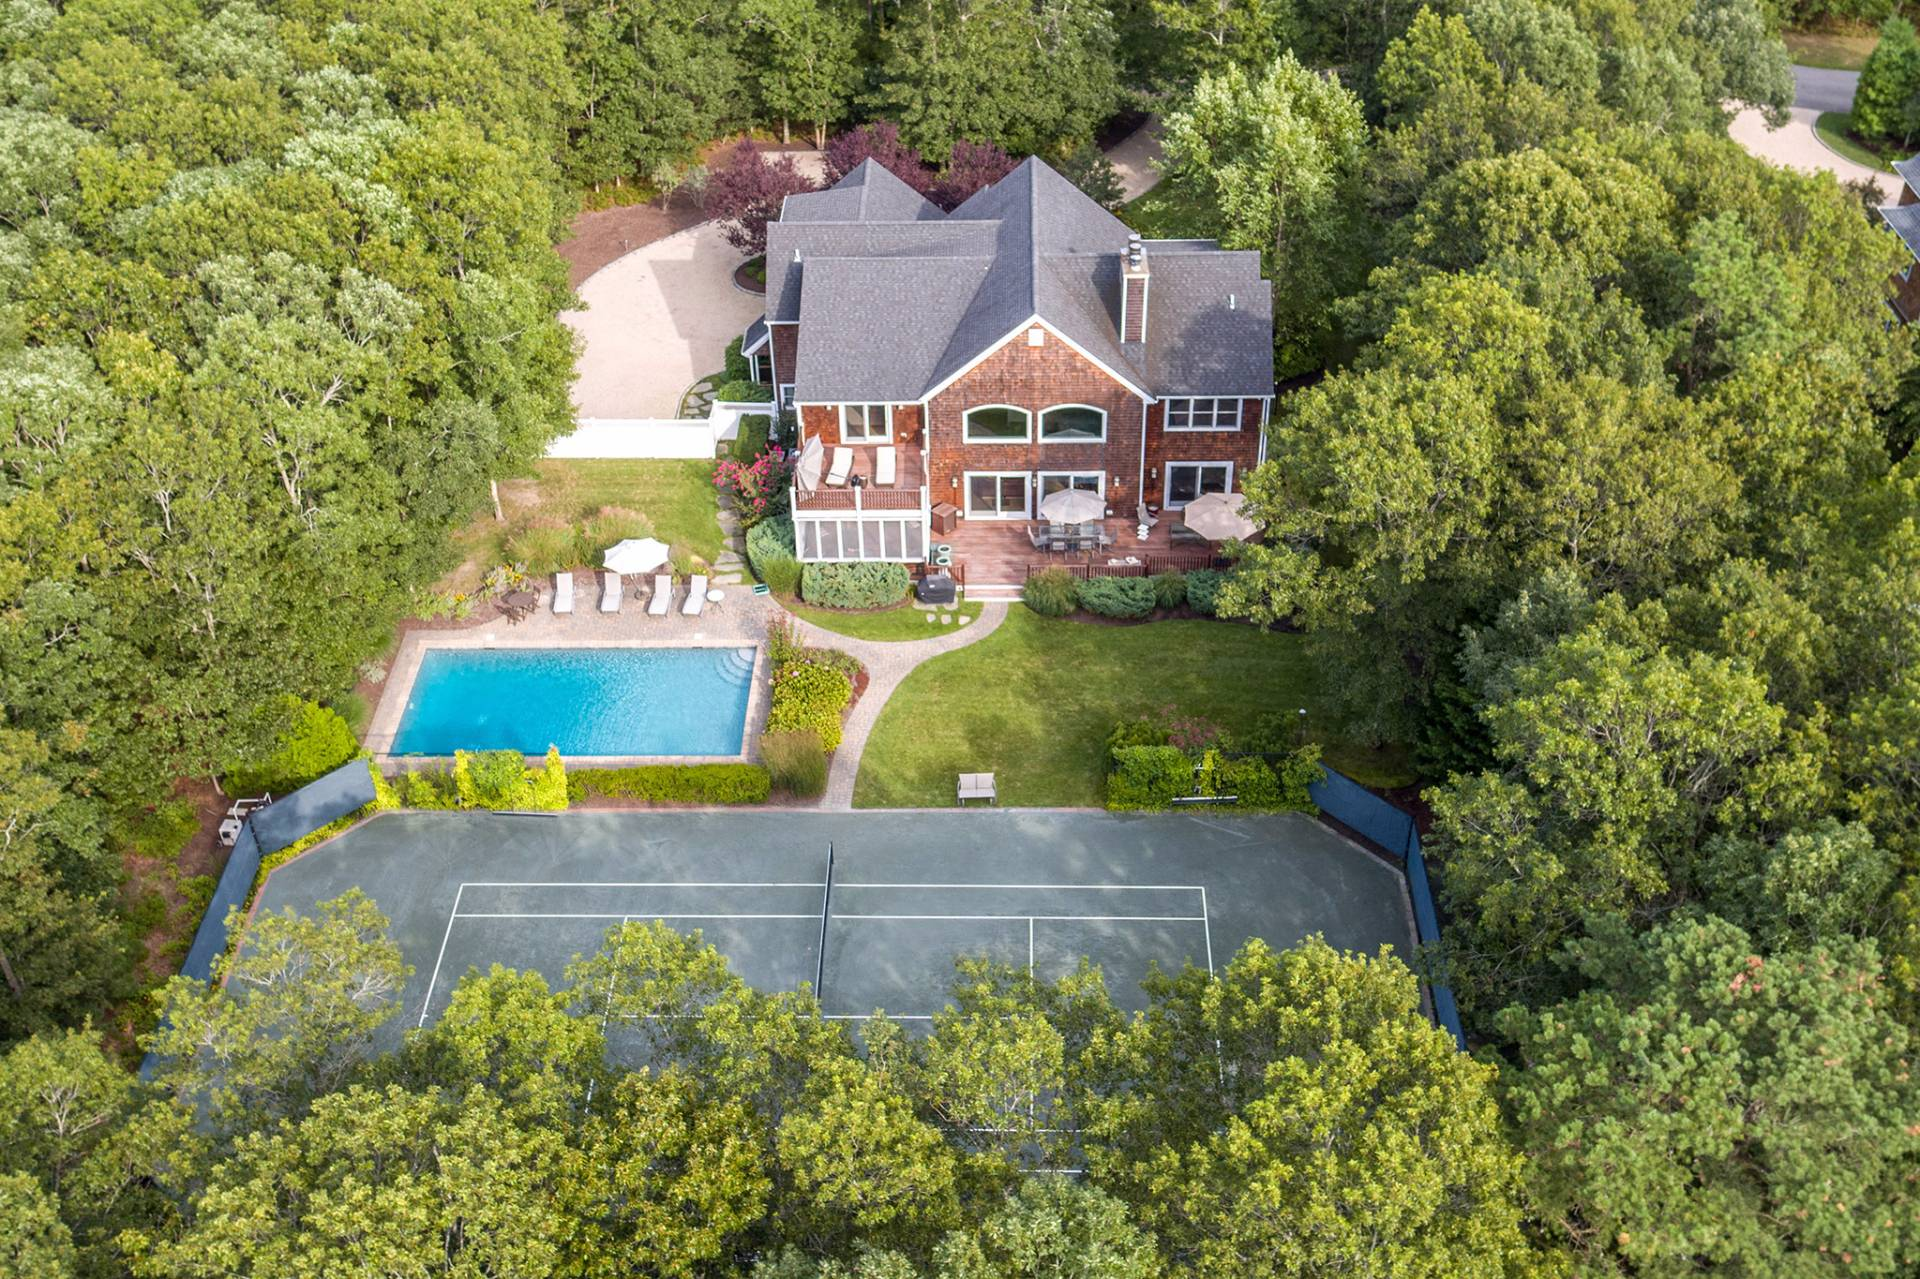 Casa Unifamiliar por un Venta en Quogue Village Beauty With Pool And Tennis On 1.2 Acres 37 Arbutus Road, Quogue, Nueva York